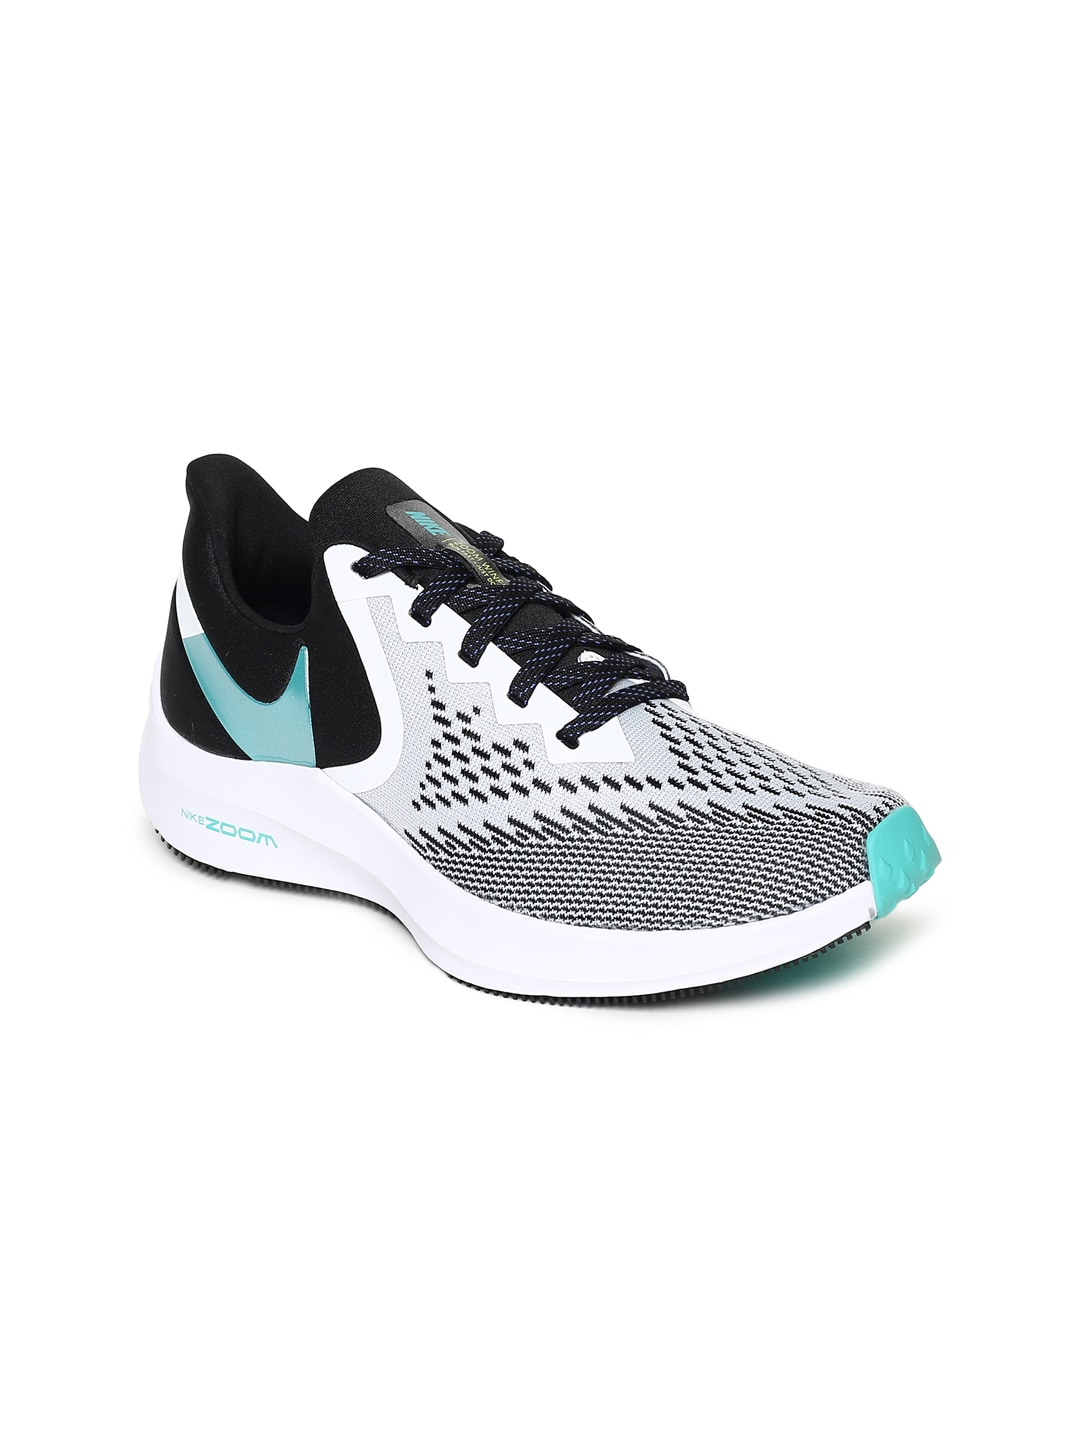 73451d7c3dd3e Nike Zoom Sports Shoes - Buy Nike Zoom Sports Shoes online in India